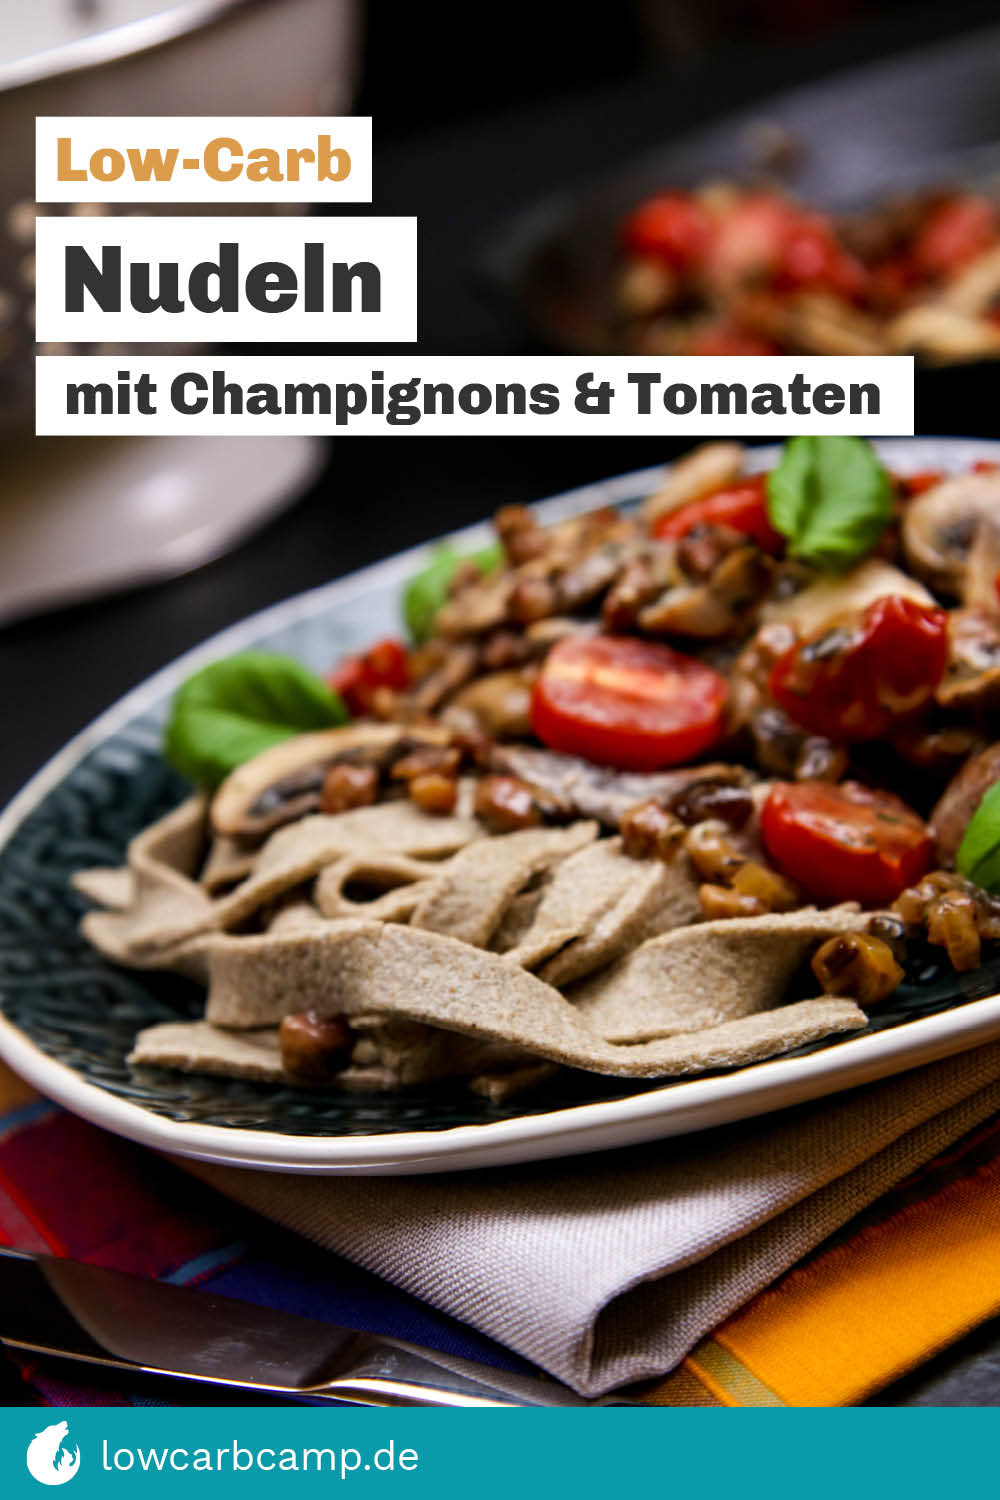 Low-Carb Nudeln